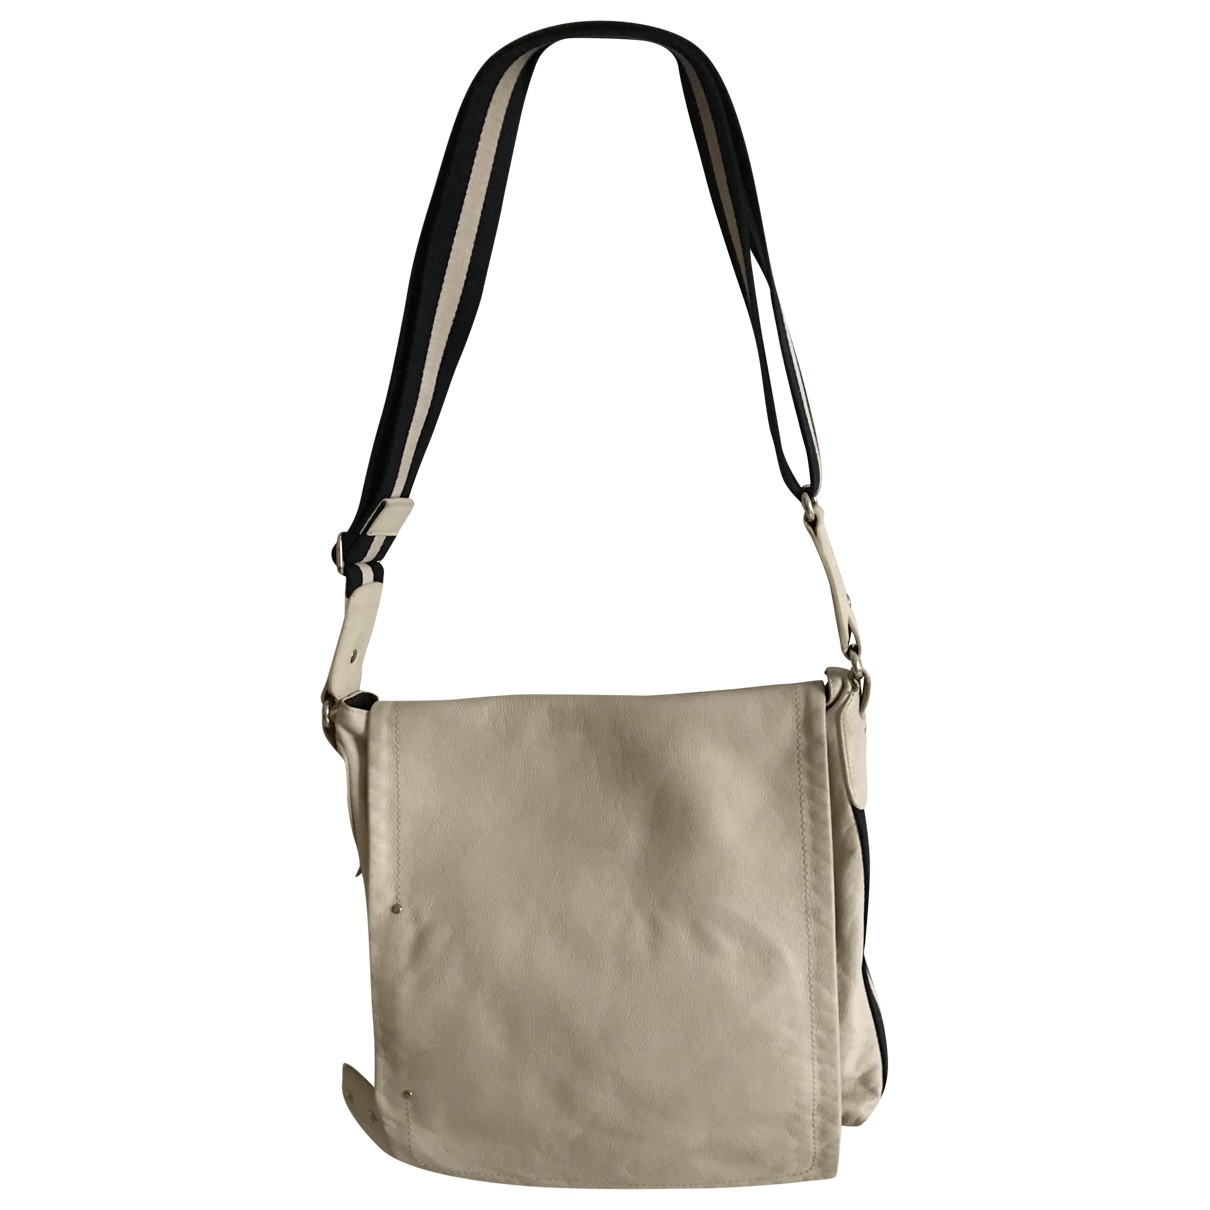 Bally \N Beige Leather handbag for Women \N